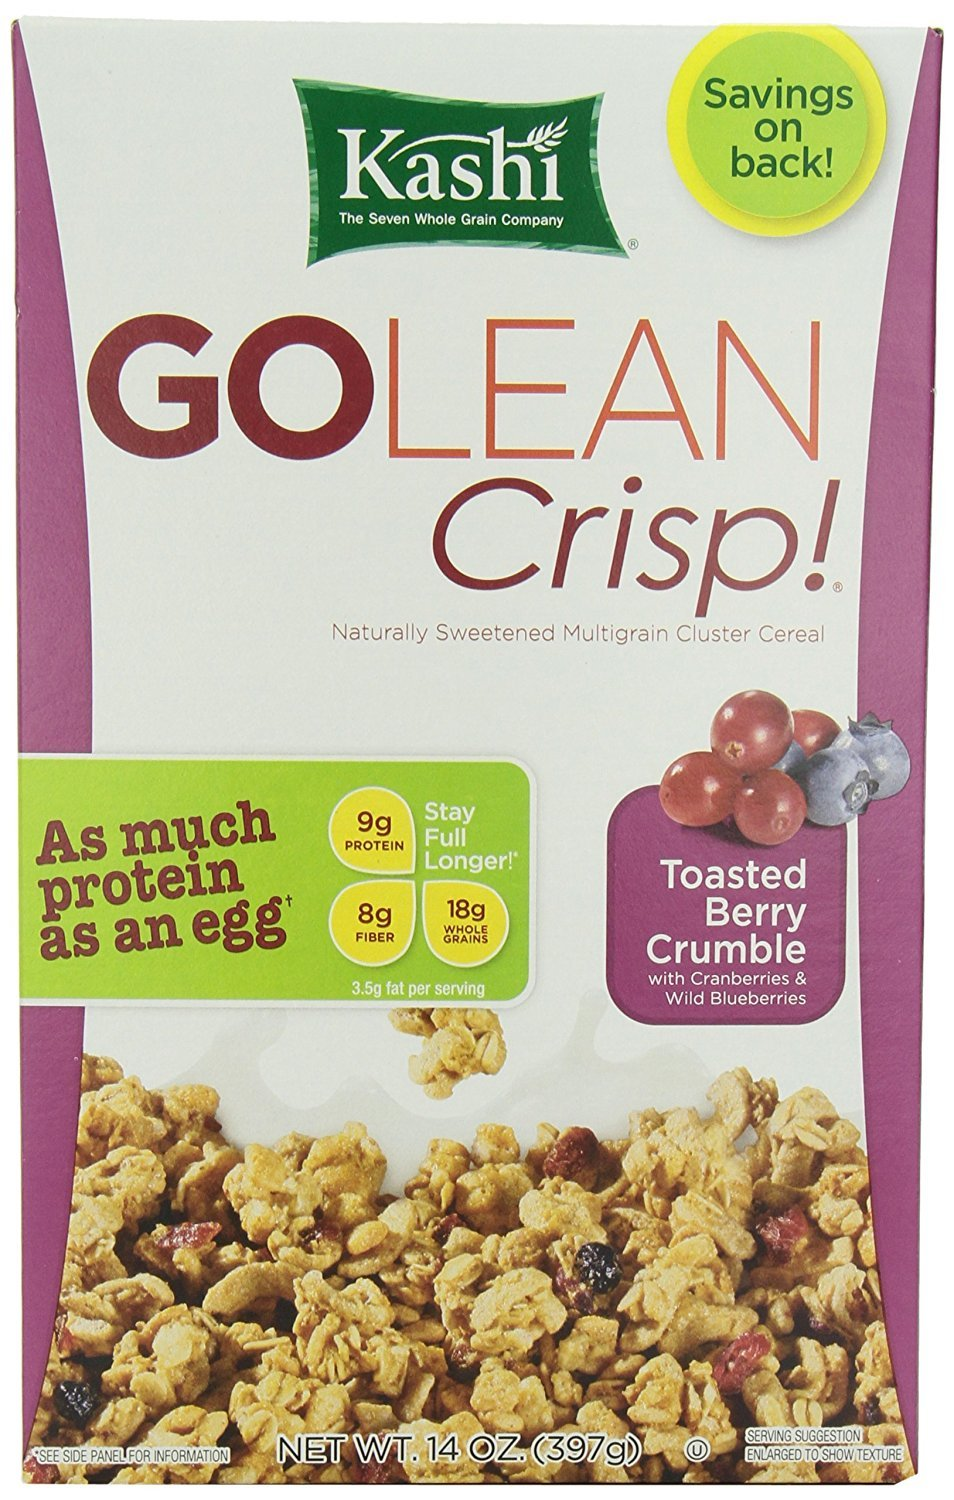 Kashi GO Toasted Berry Crisp Cereal - Vegan, Non-GMO Project Verified, 14 Oz Box (Pack of 12 Boxes)